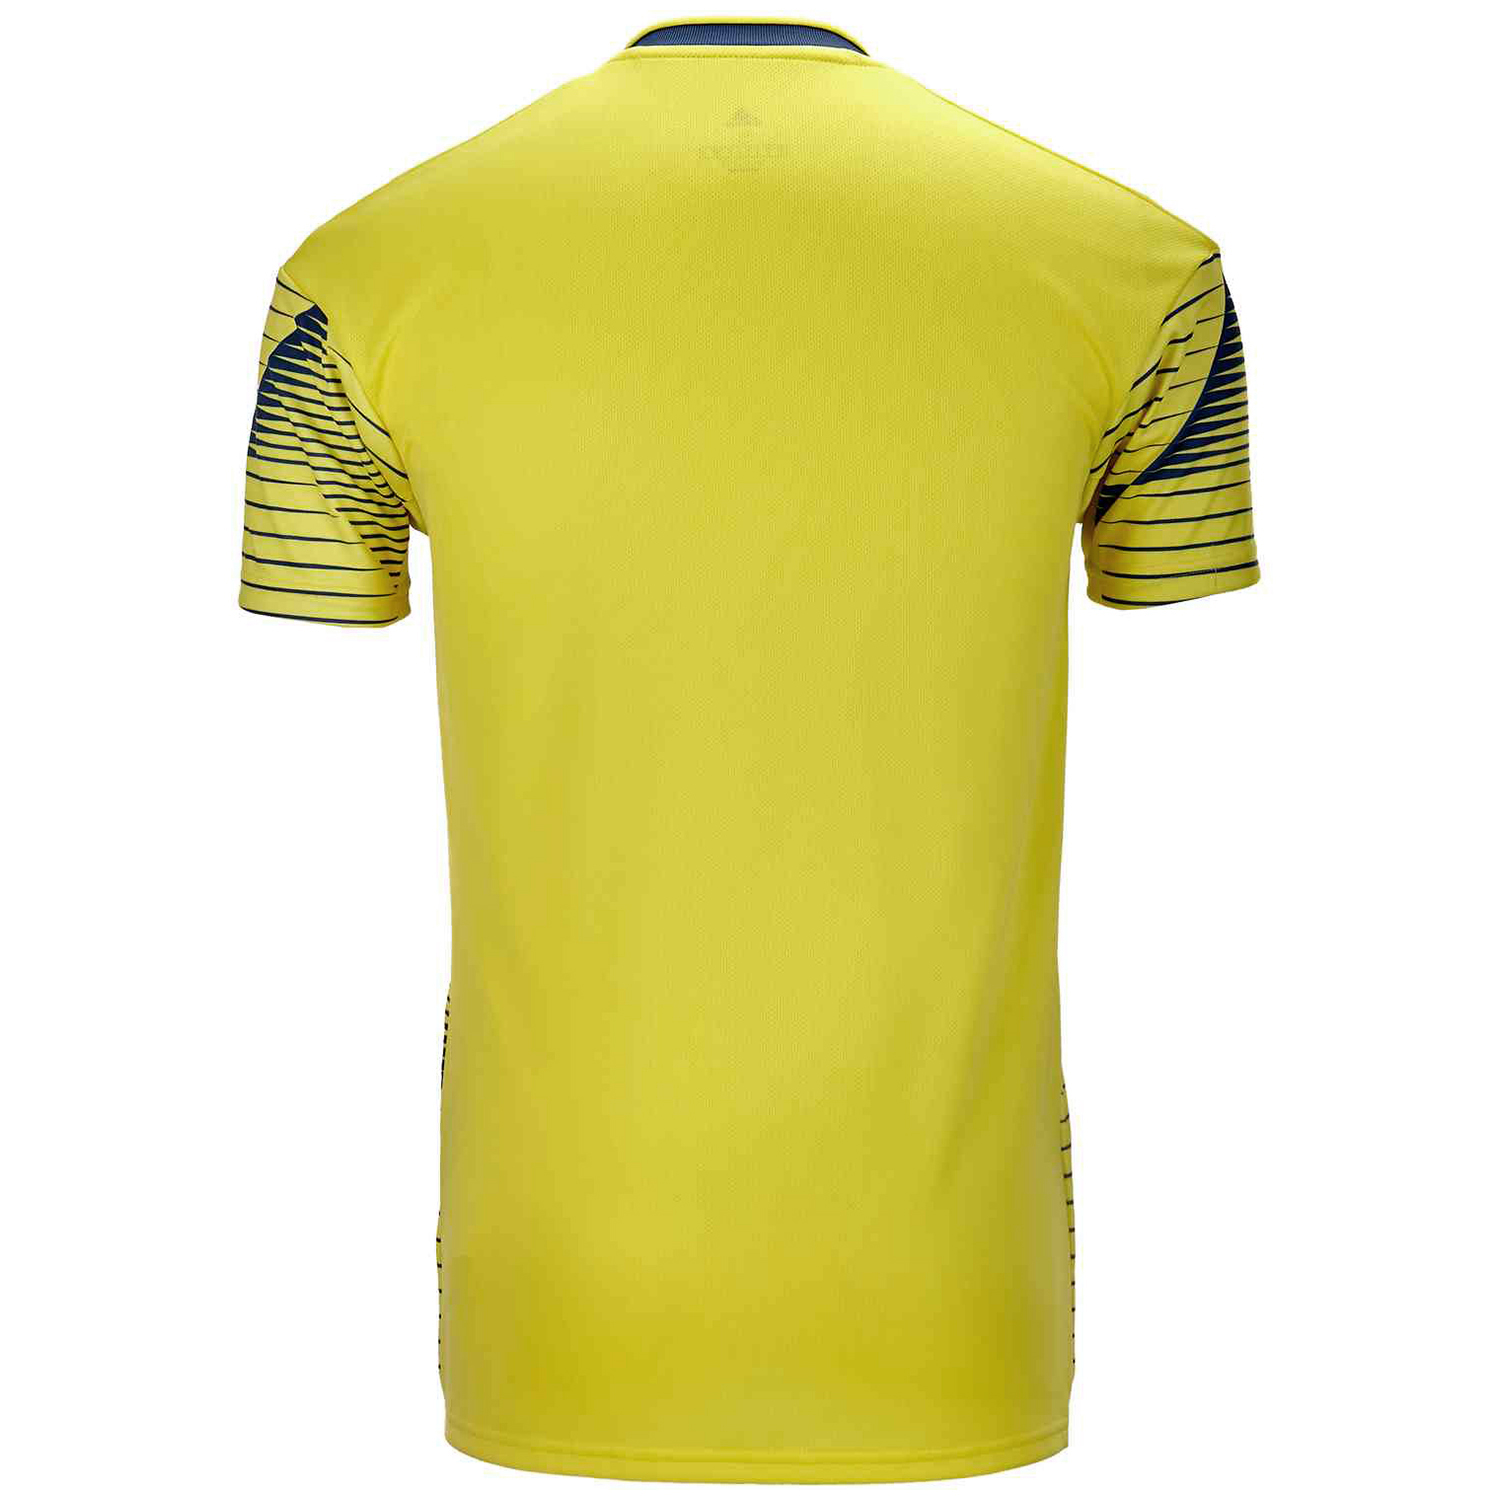 6a3a7fd20b2 adidas COLOMBIA HOME JERSEY 2019